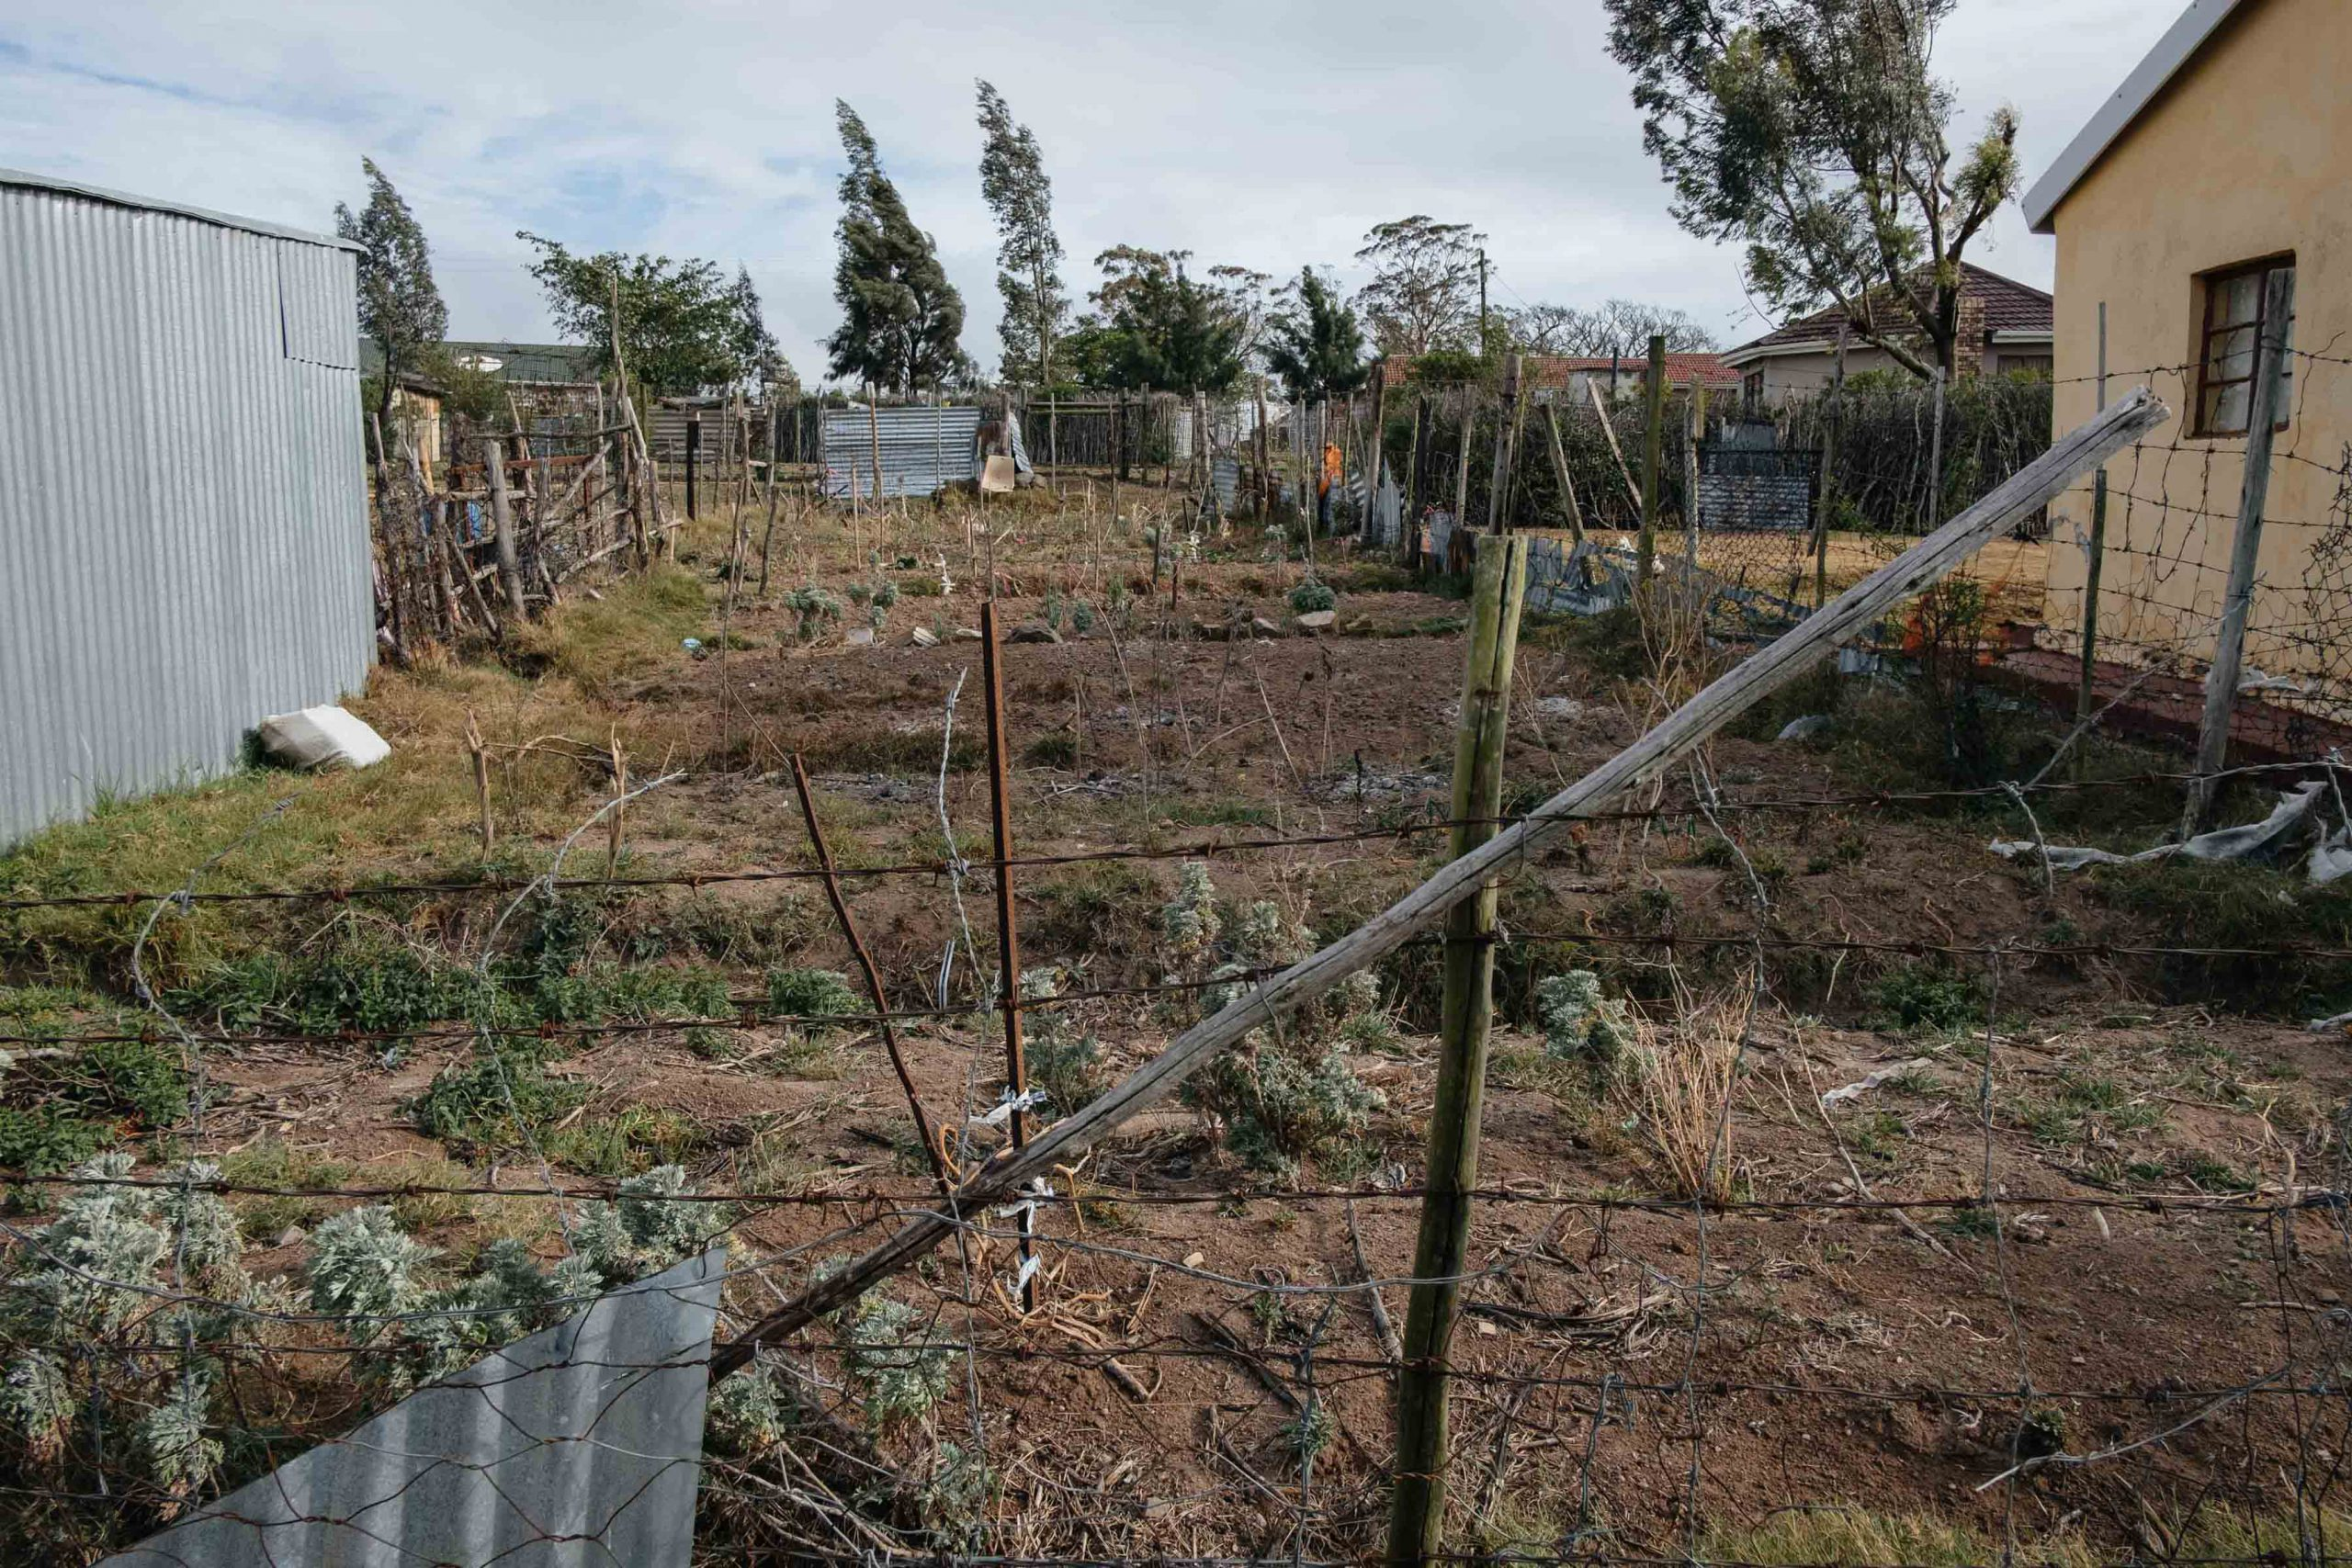 11 November 2019. A vegetable garden in Nqgwele Village is sparsely planted due to poor rainfall, which has gripped the Eastern Cape region since 2016. Vegetable gardens provide an important source of food in many marginalised rural villages.